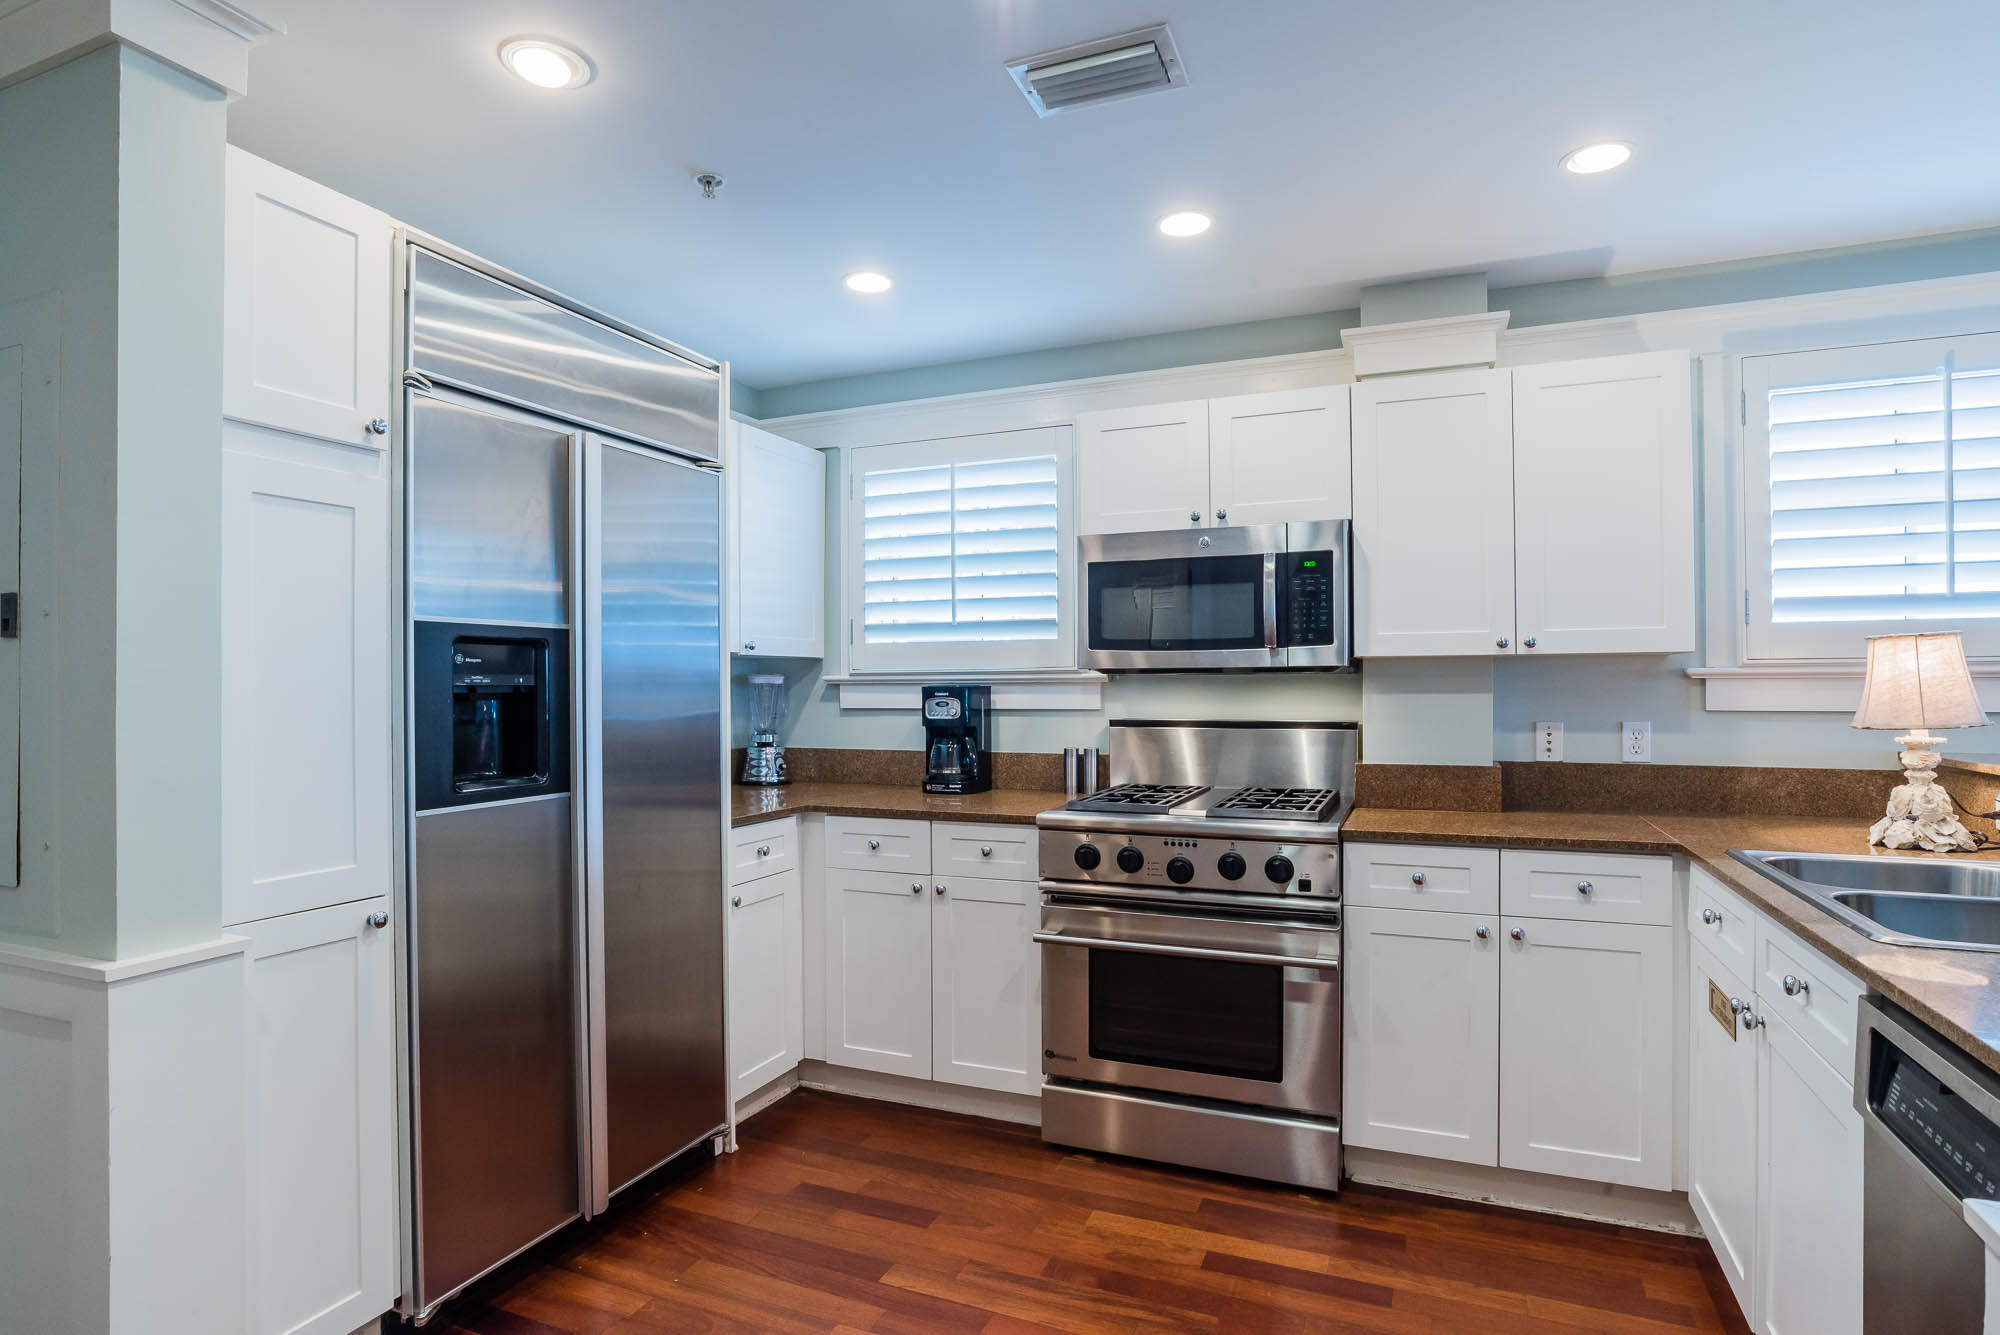 Kitchen with all stainless appliances and granite countertops